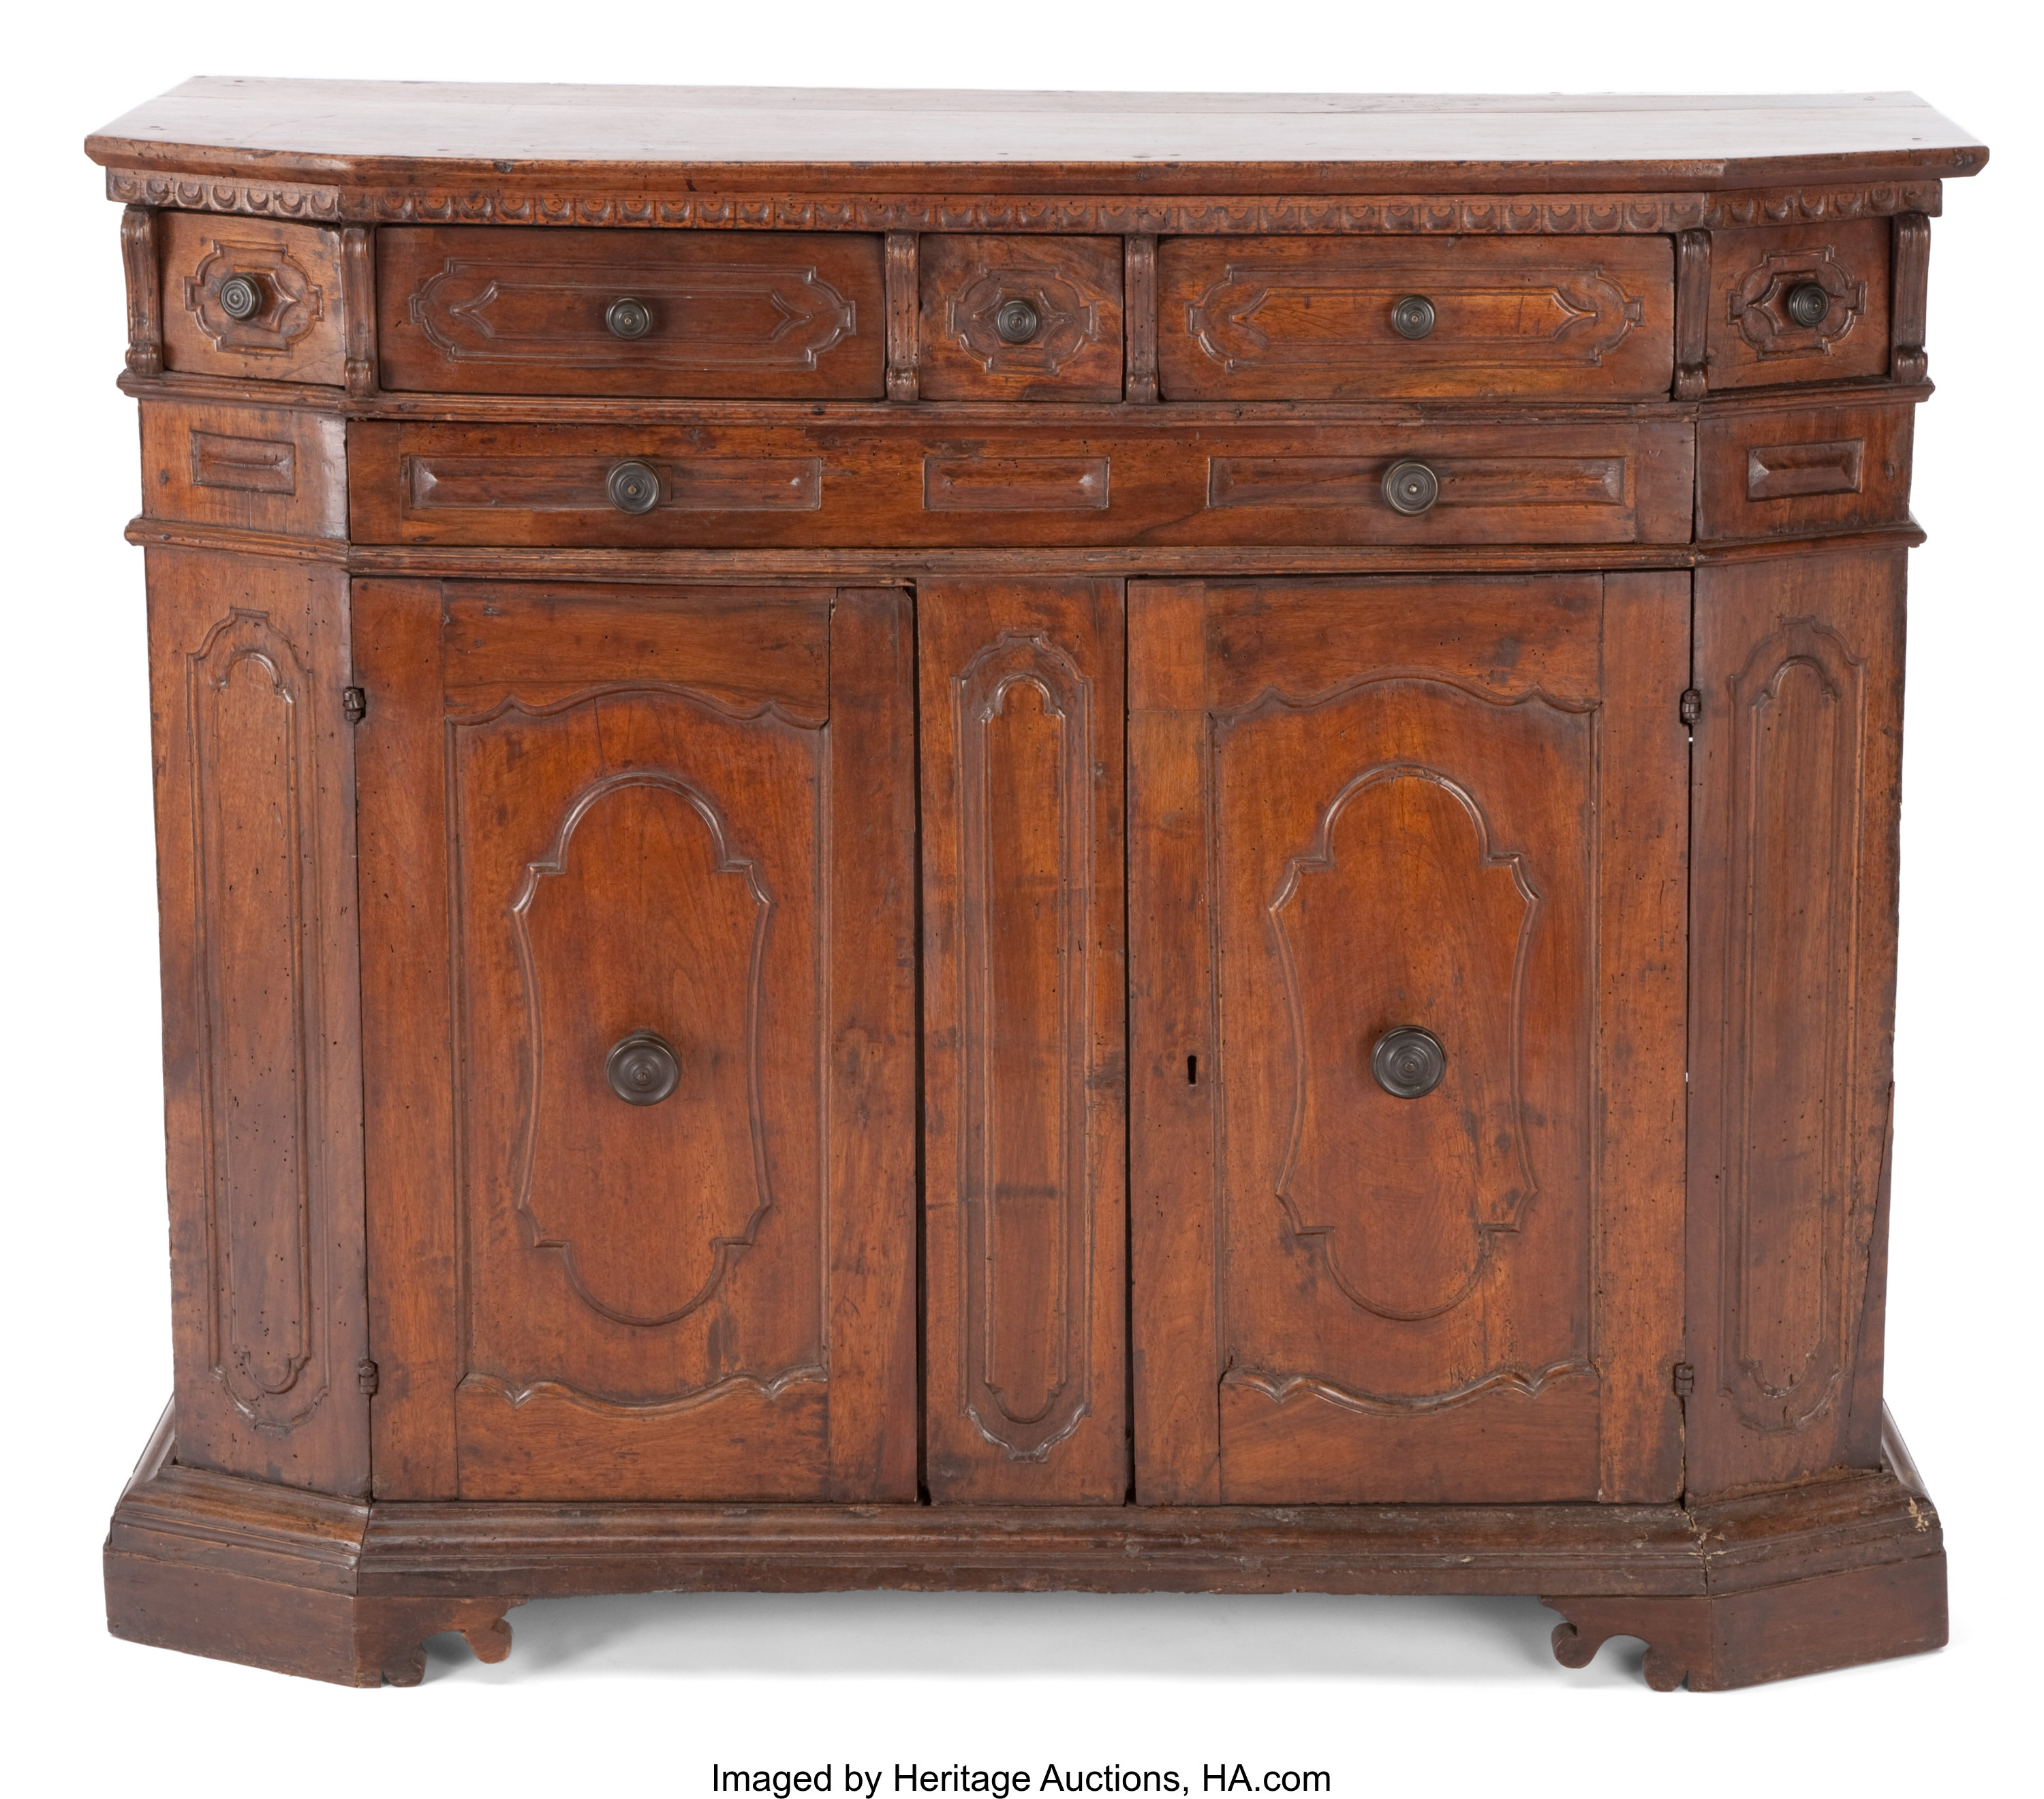 An Italian Baroque Wood Cabinet 17th